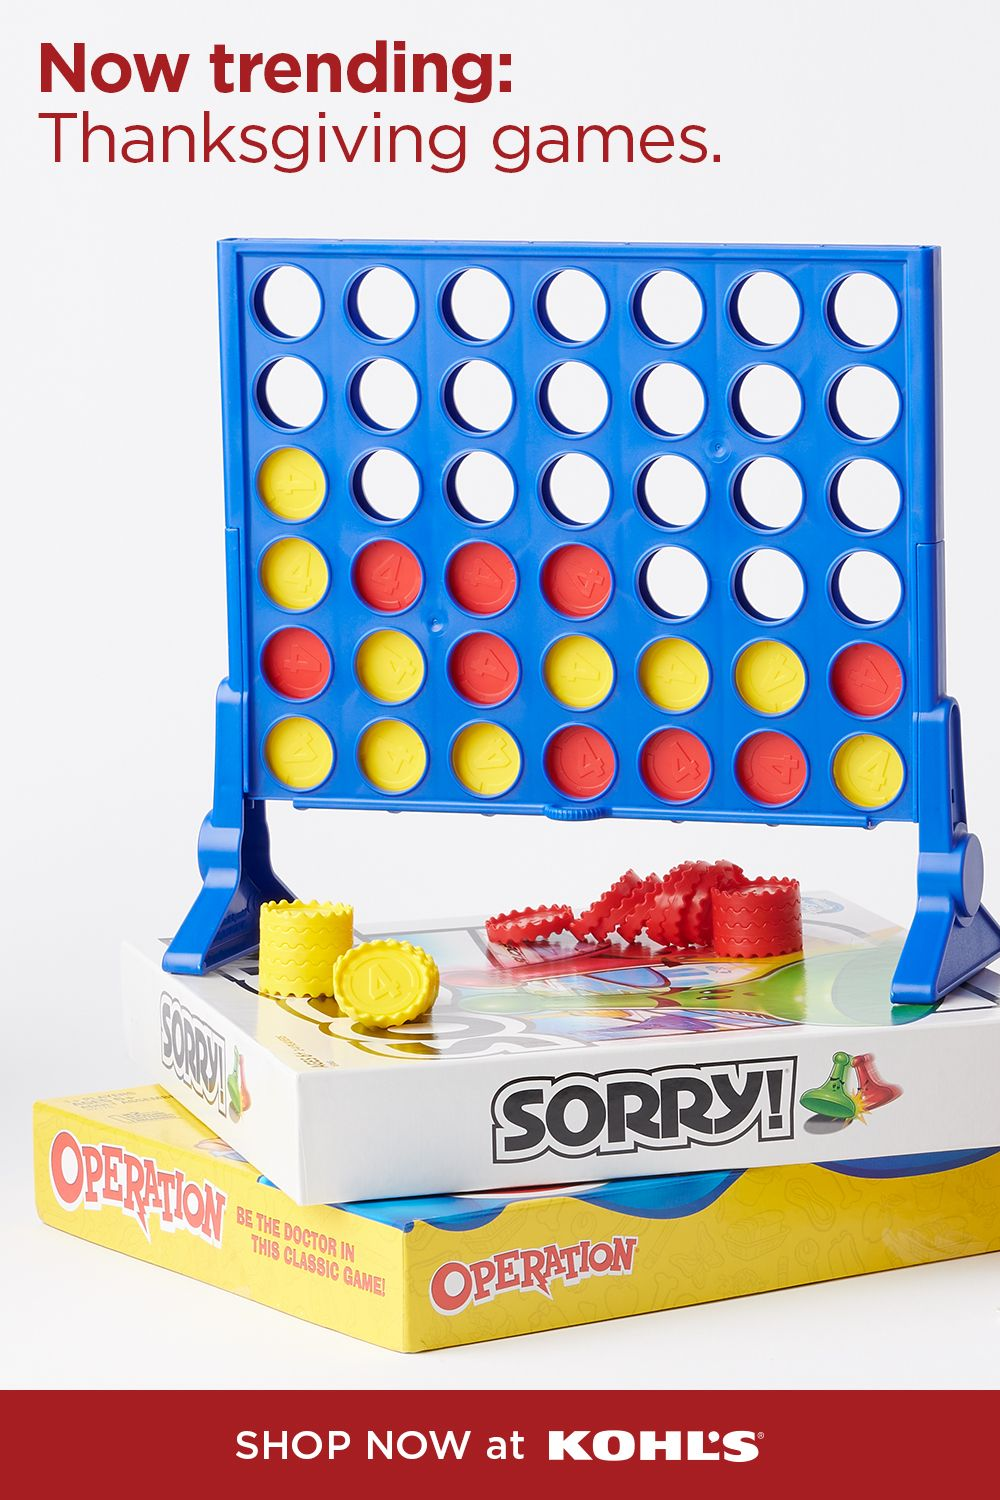 Find Fun Games For The Family At Kohl S In 2020 Dollar Tree Crafts Thanksgiving Games Family Entertainment